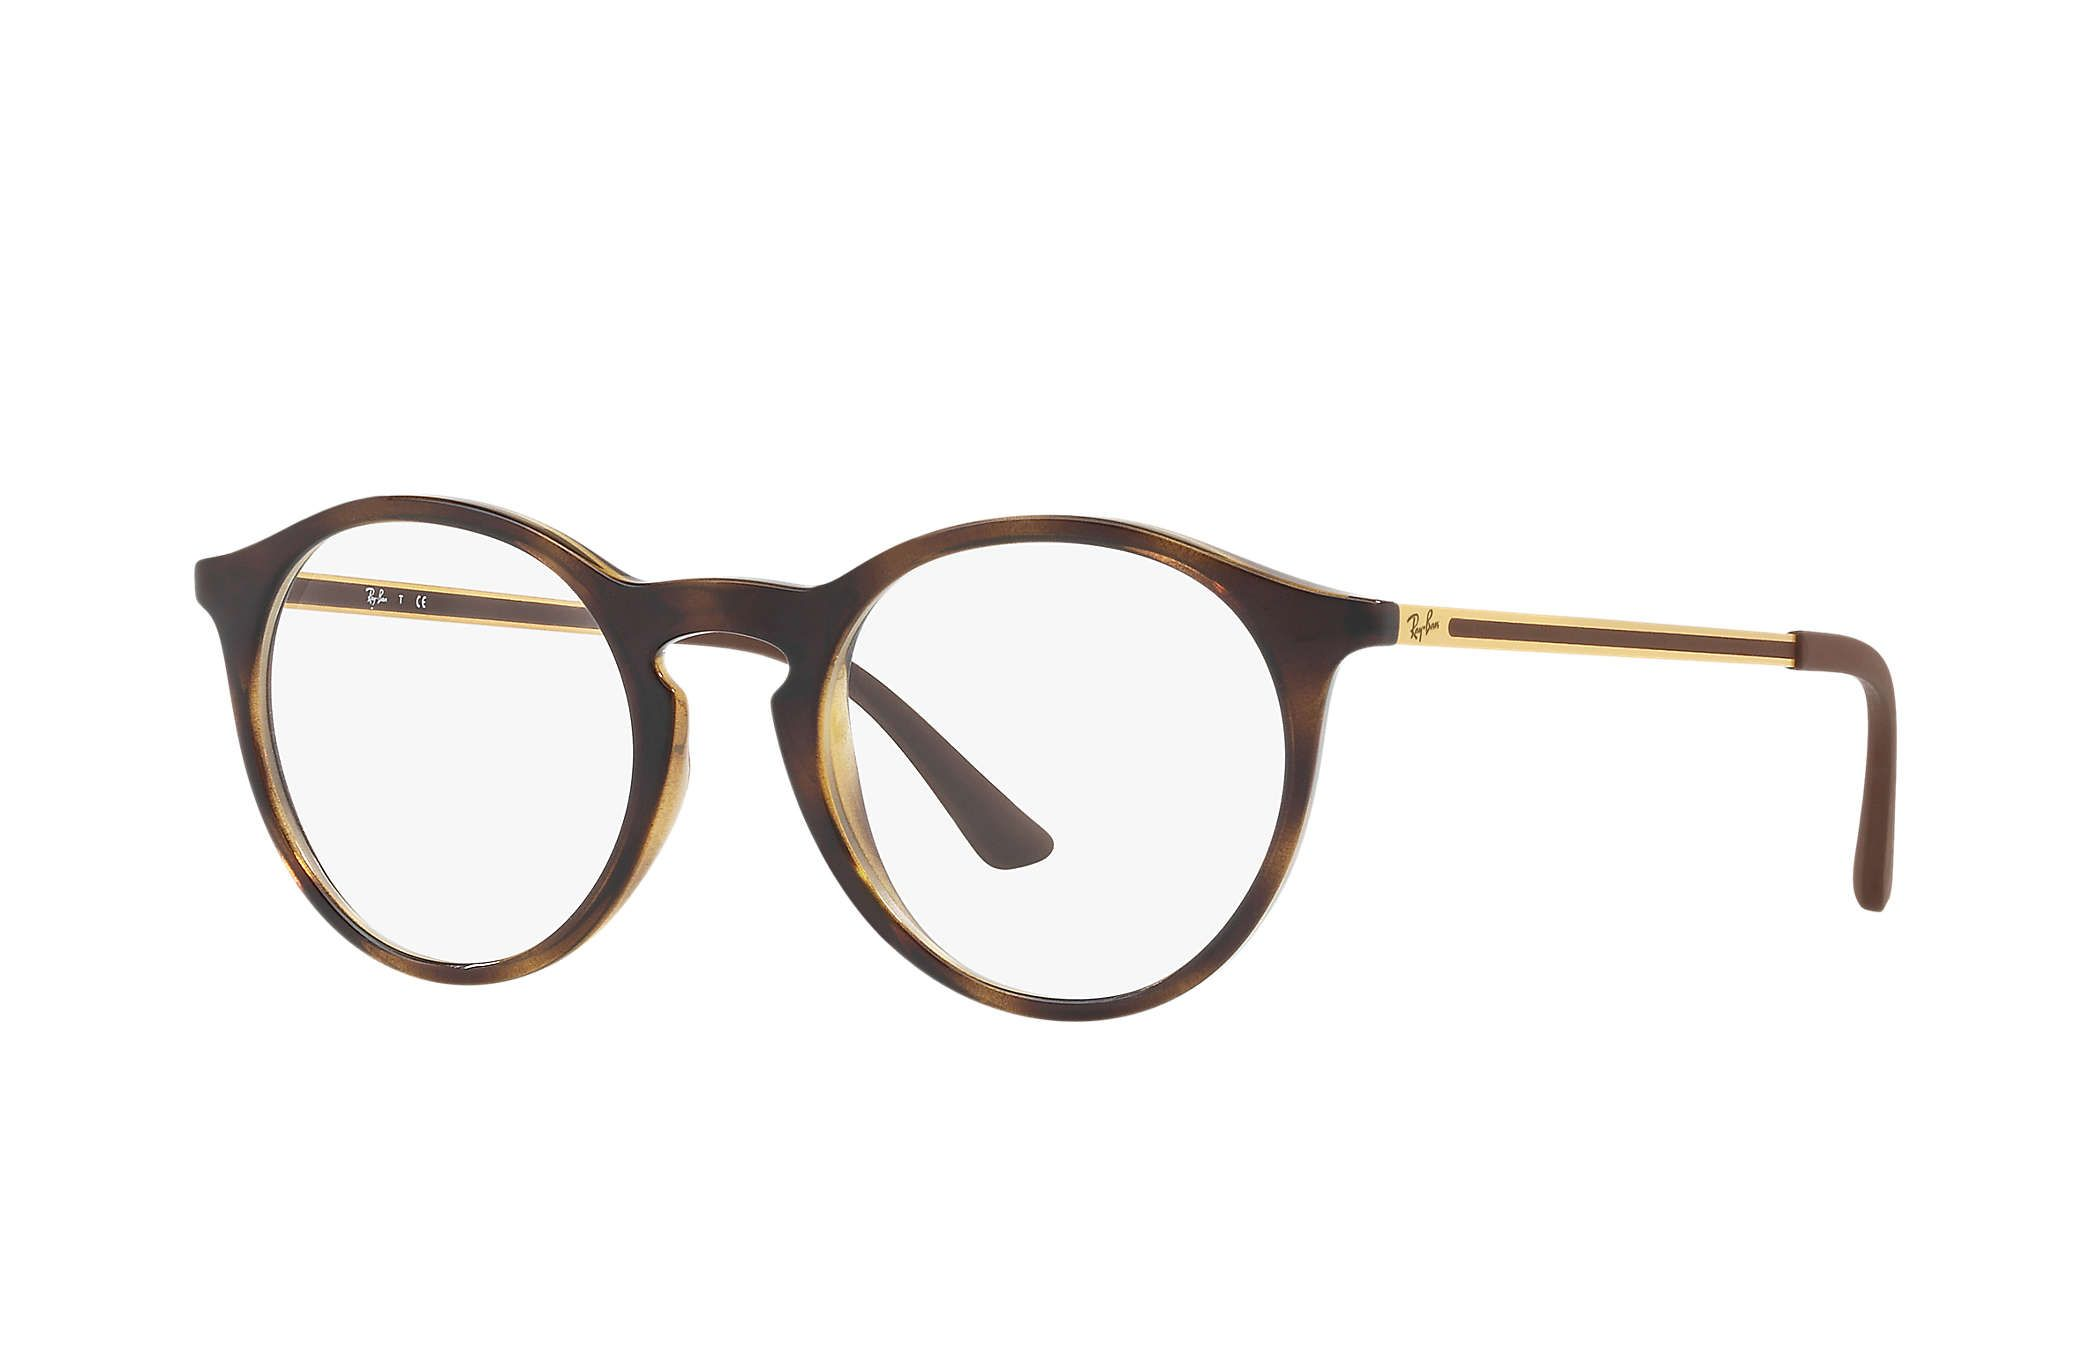 ca0ba2a3df Glasses · Ray-Ban 0RX7132-RB7132 Tortoise  Brown OPTICAL https   twitter.